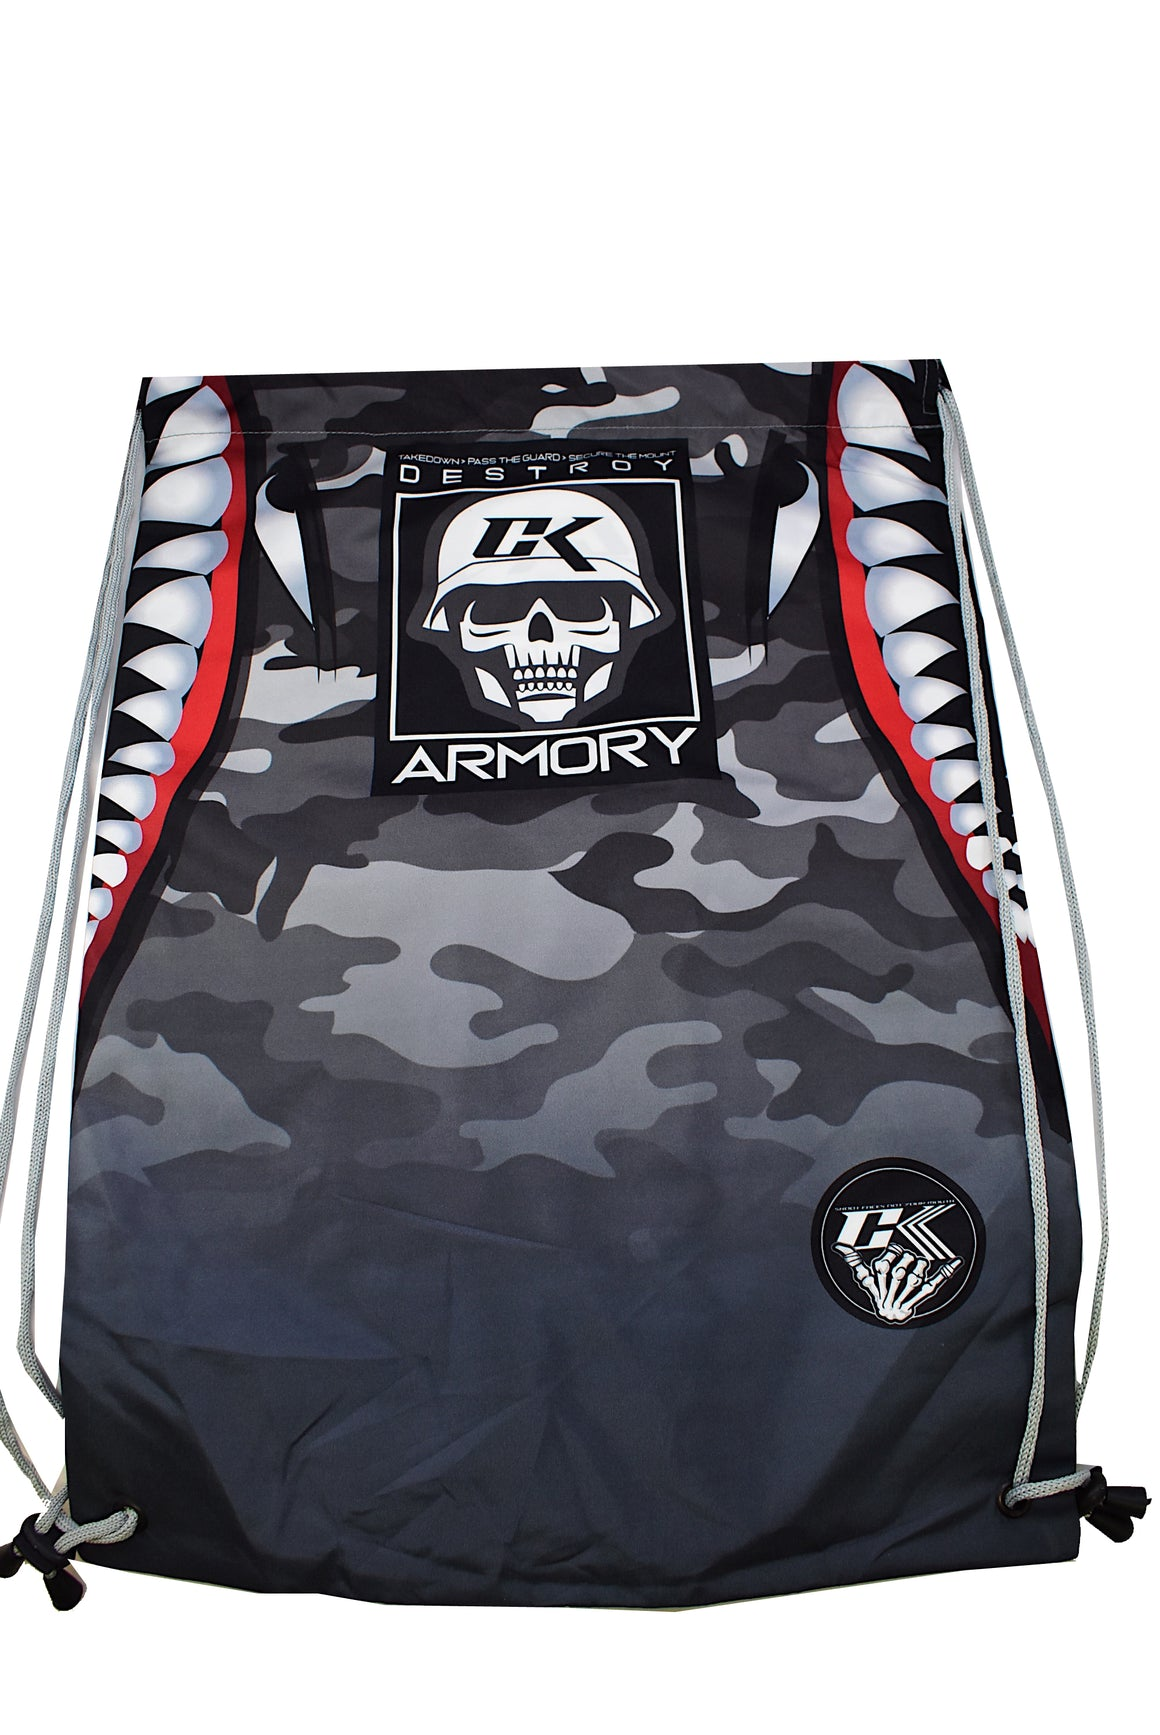 CK Armory Drawstring Bag - Gray